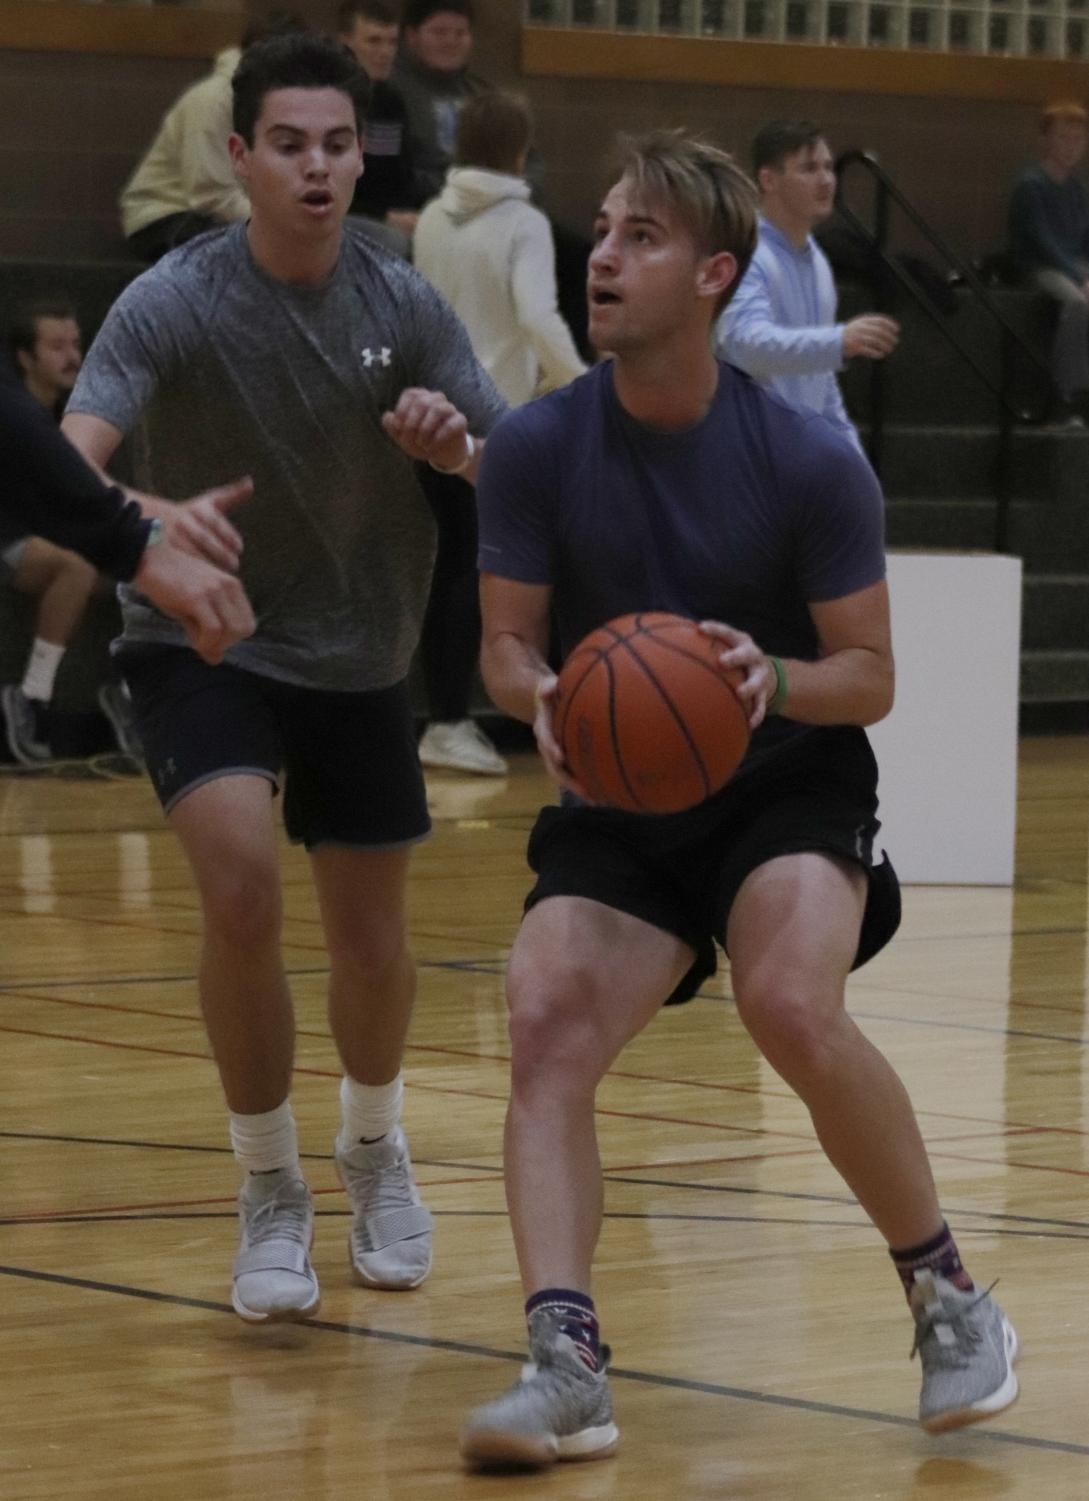 Kappa Sigma Fraternity reached first place in the intramural basketball tournament against Kappa Alpha Order.